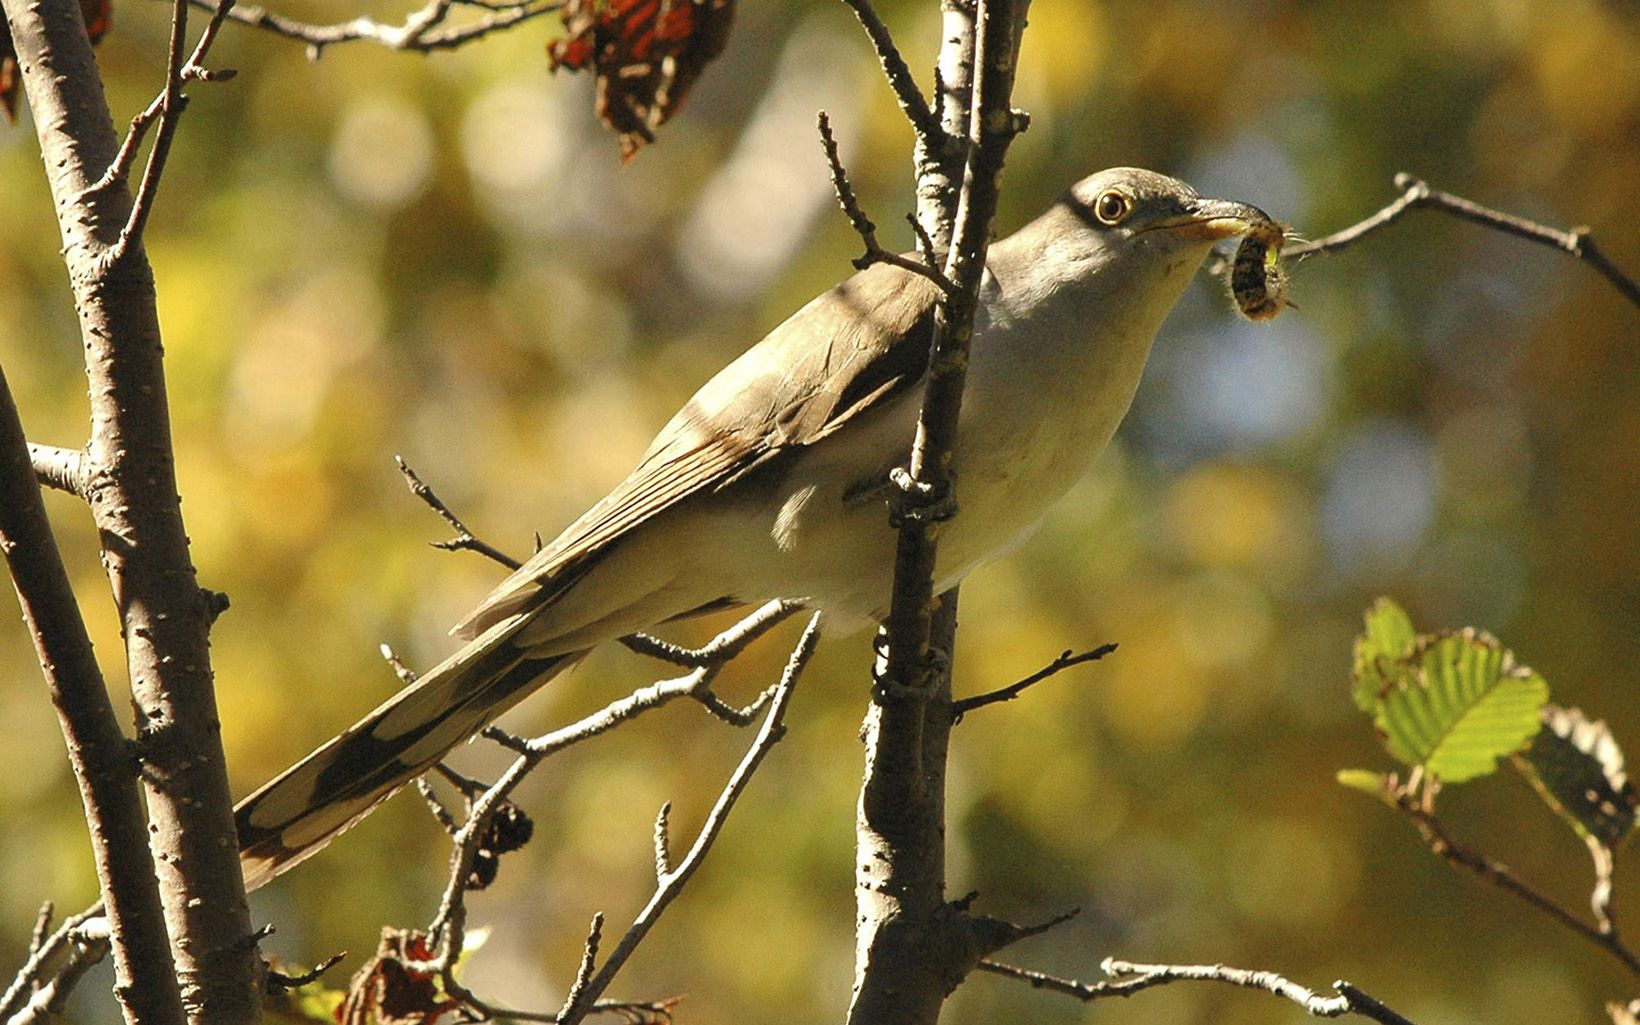 Yellowish bird with bug in its mouth perched on branch.